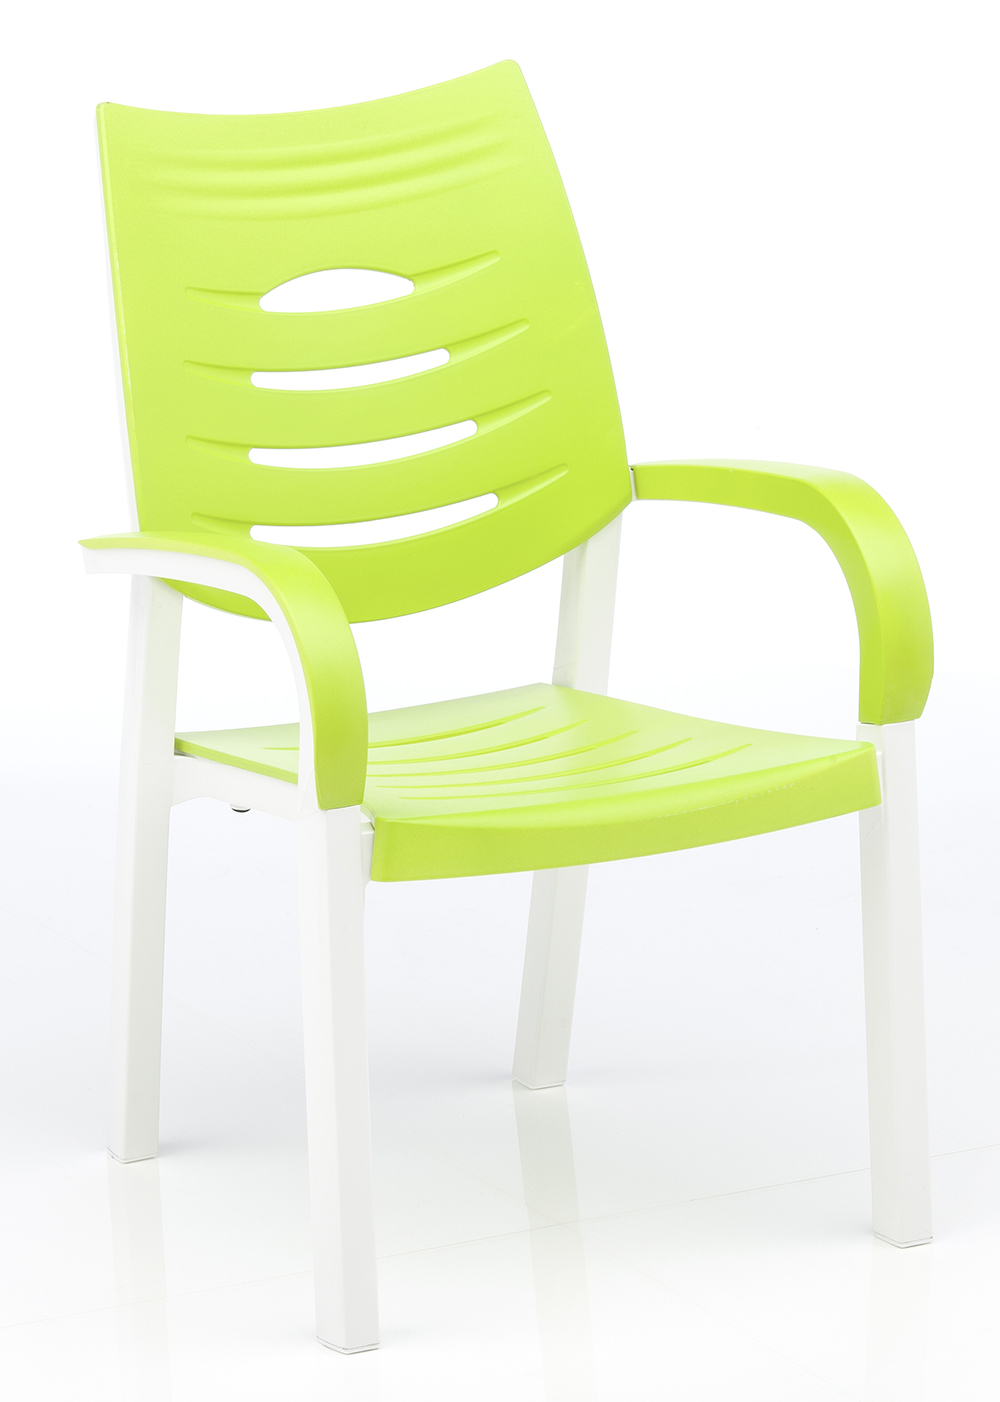 HAPPY CHAIR-LIME 310202-5300